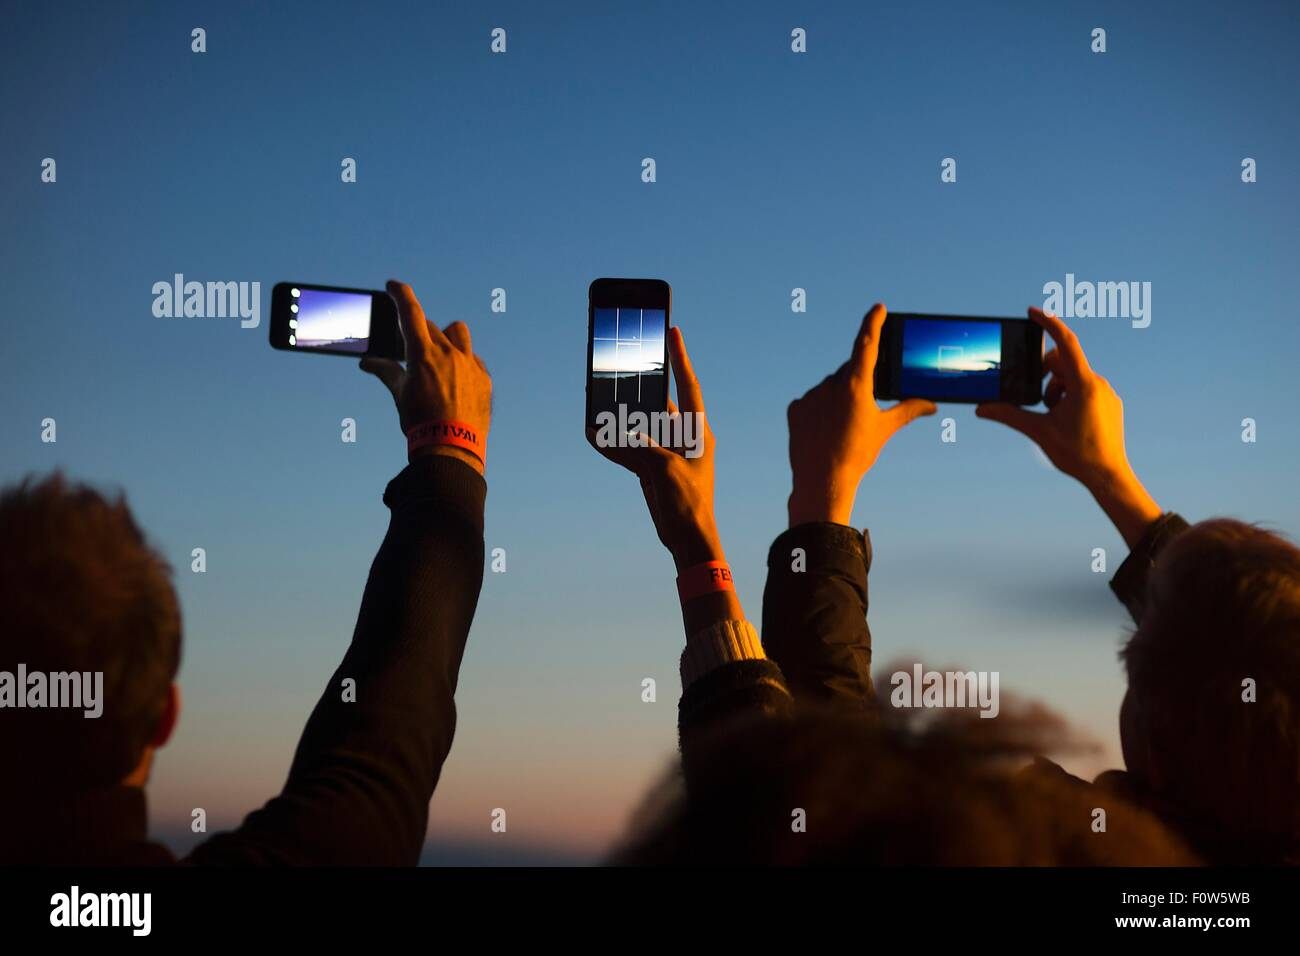 Les amis taking photograph with smartphone at Dusk Photo Stock